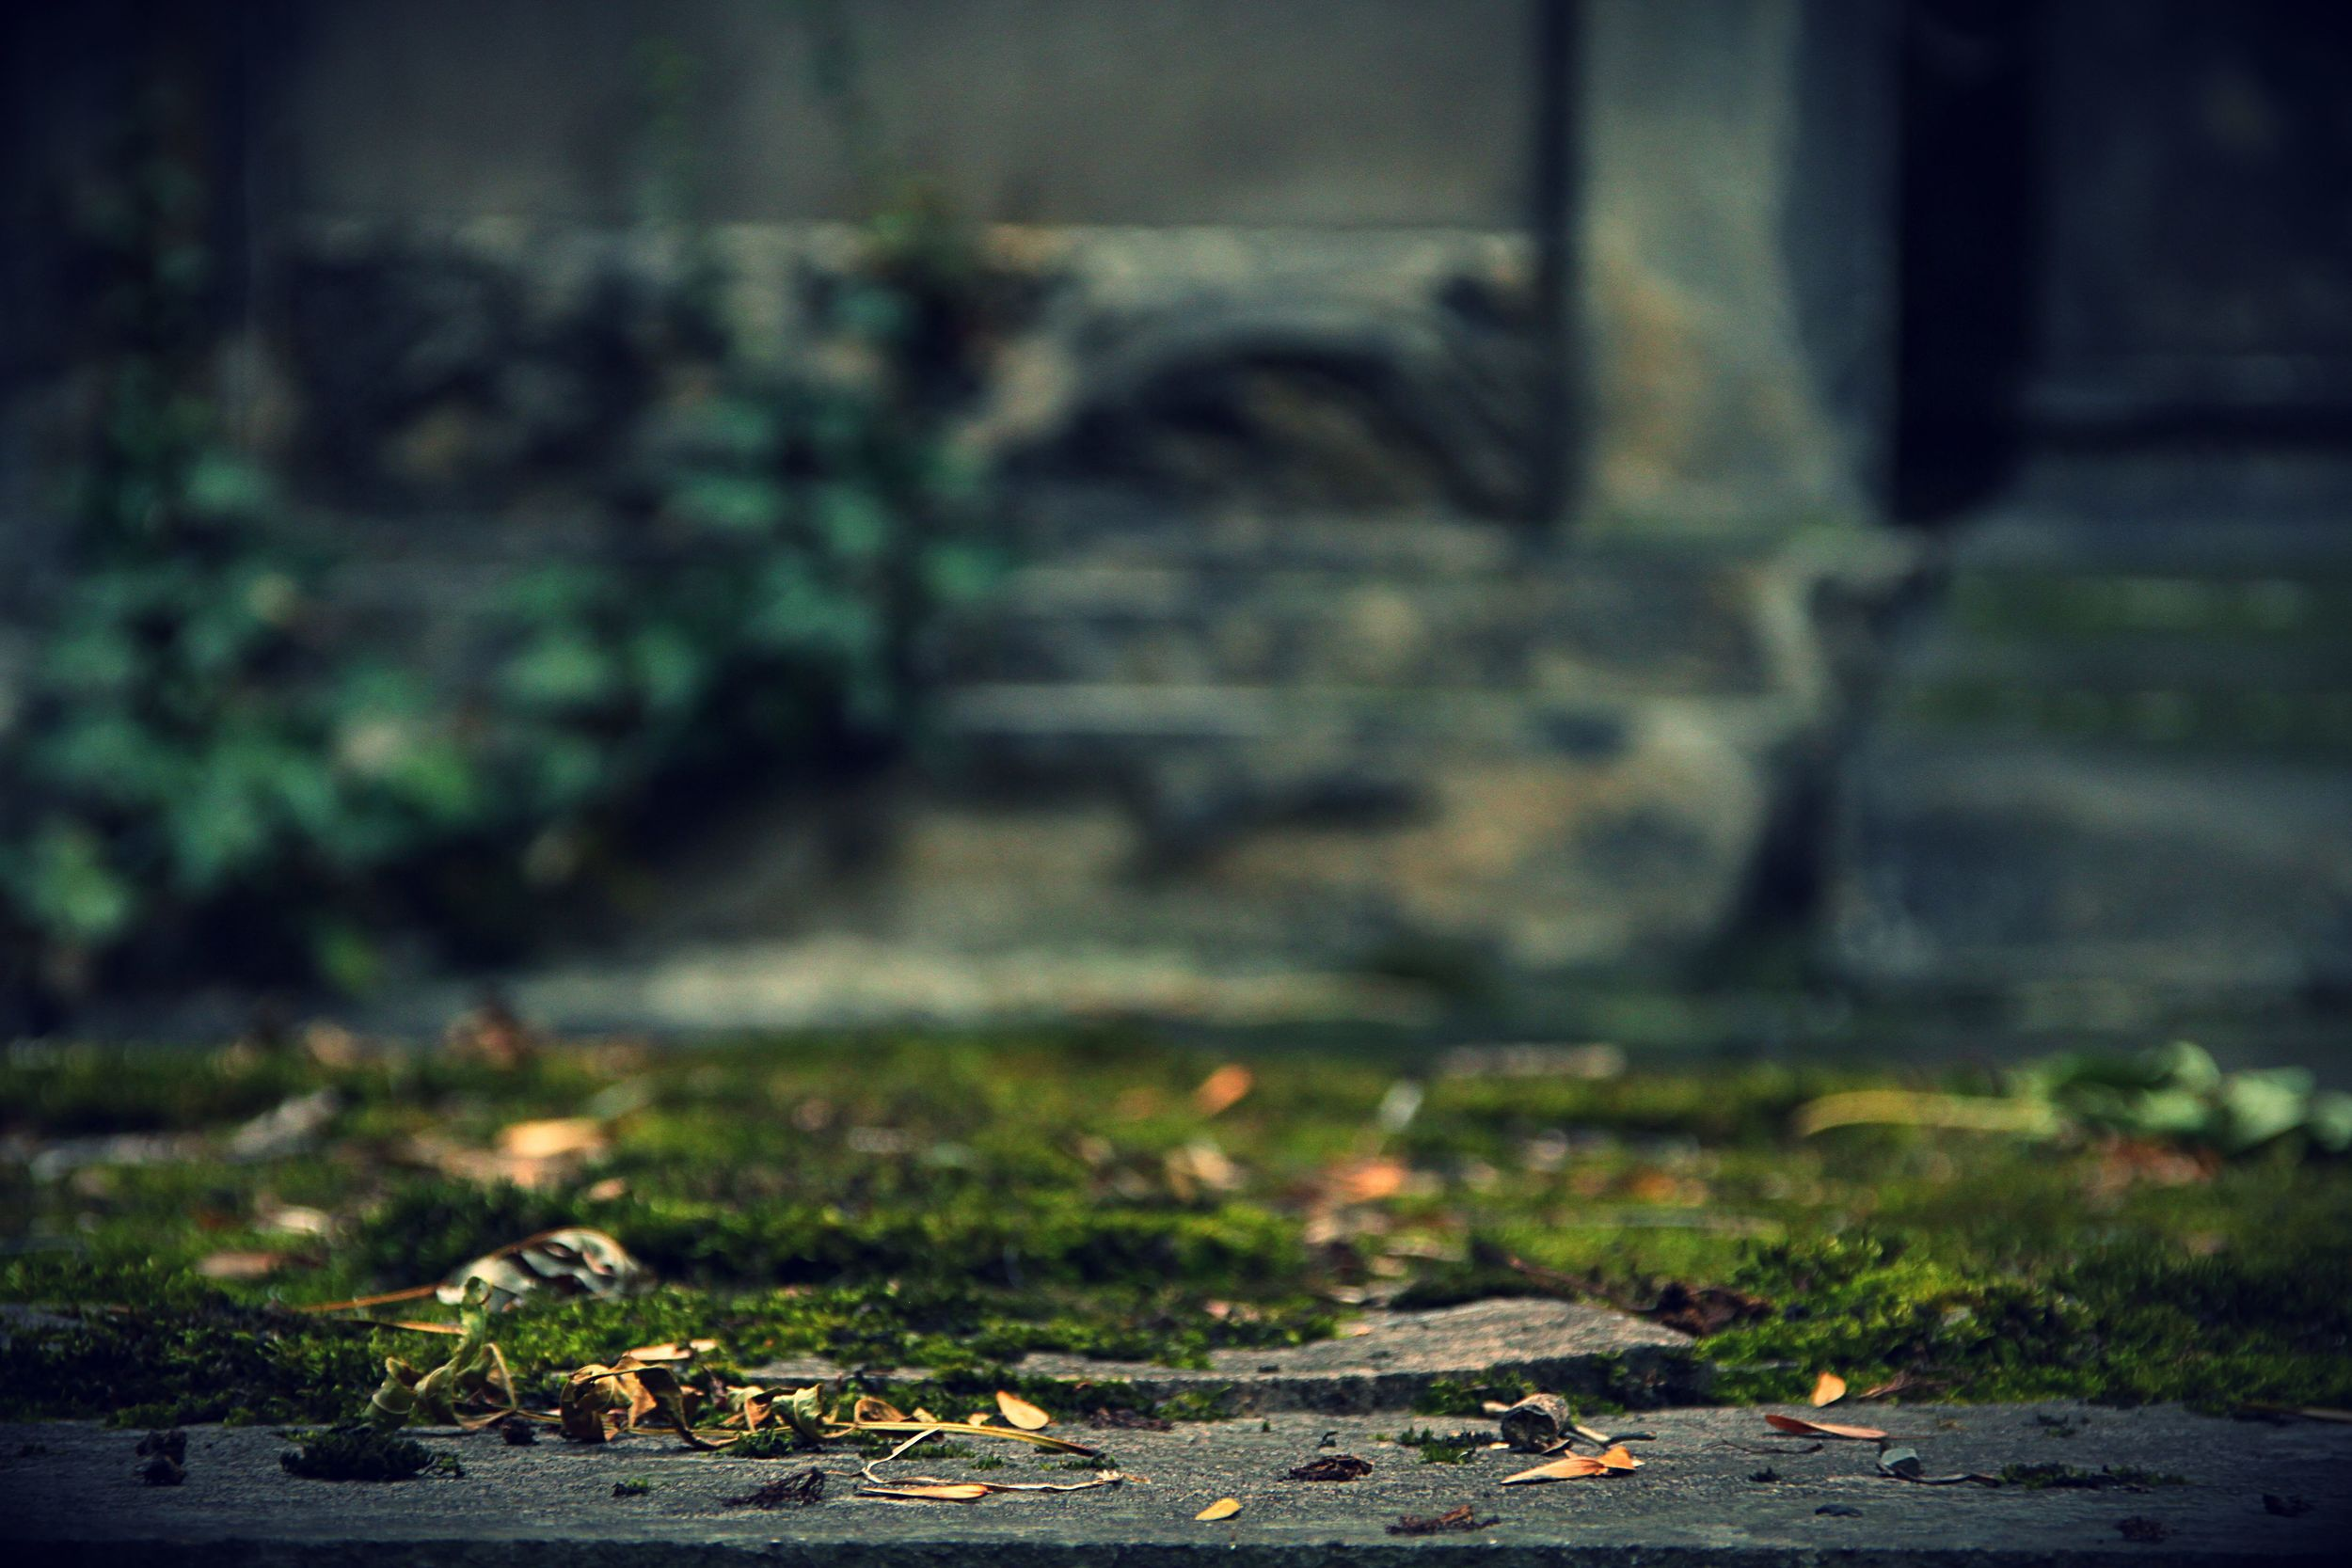 Exploring Old Cemeteries in Praha leads to a good roll of film